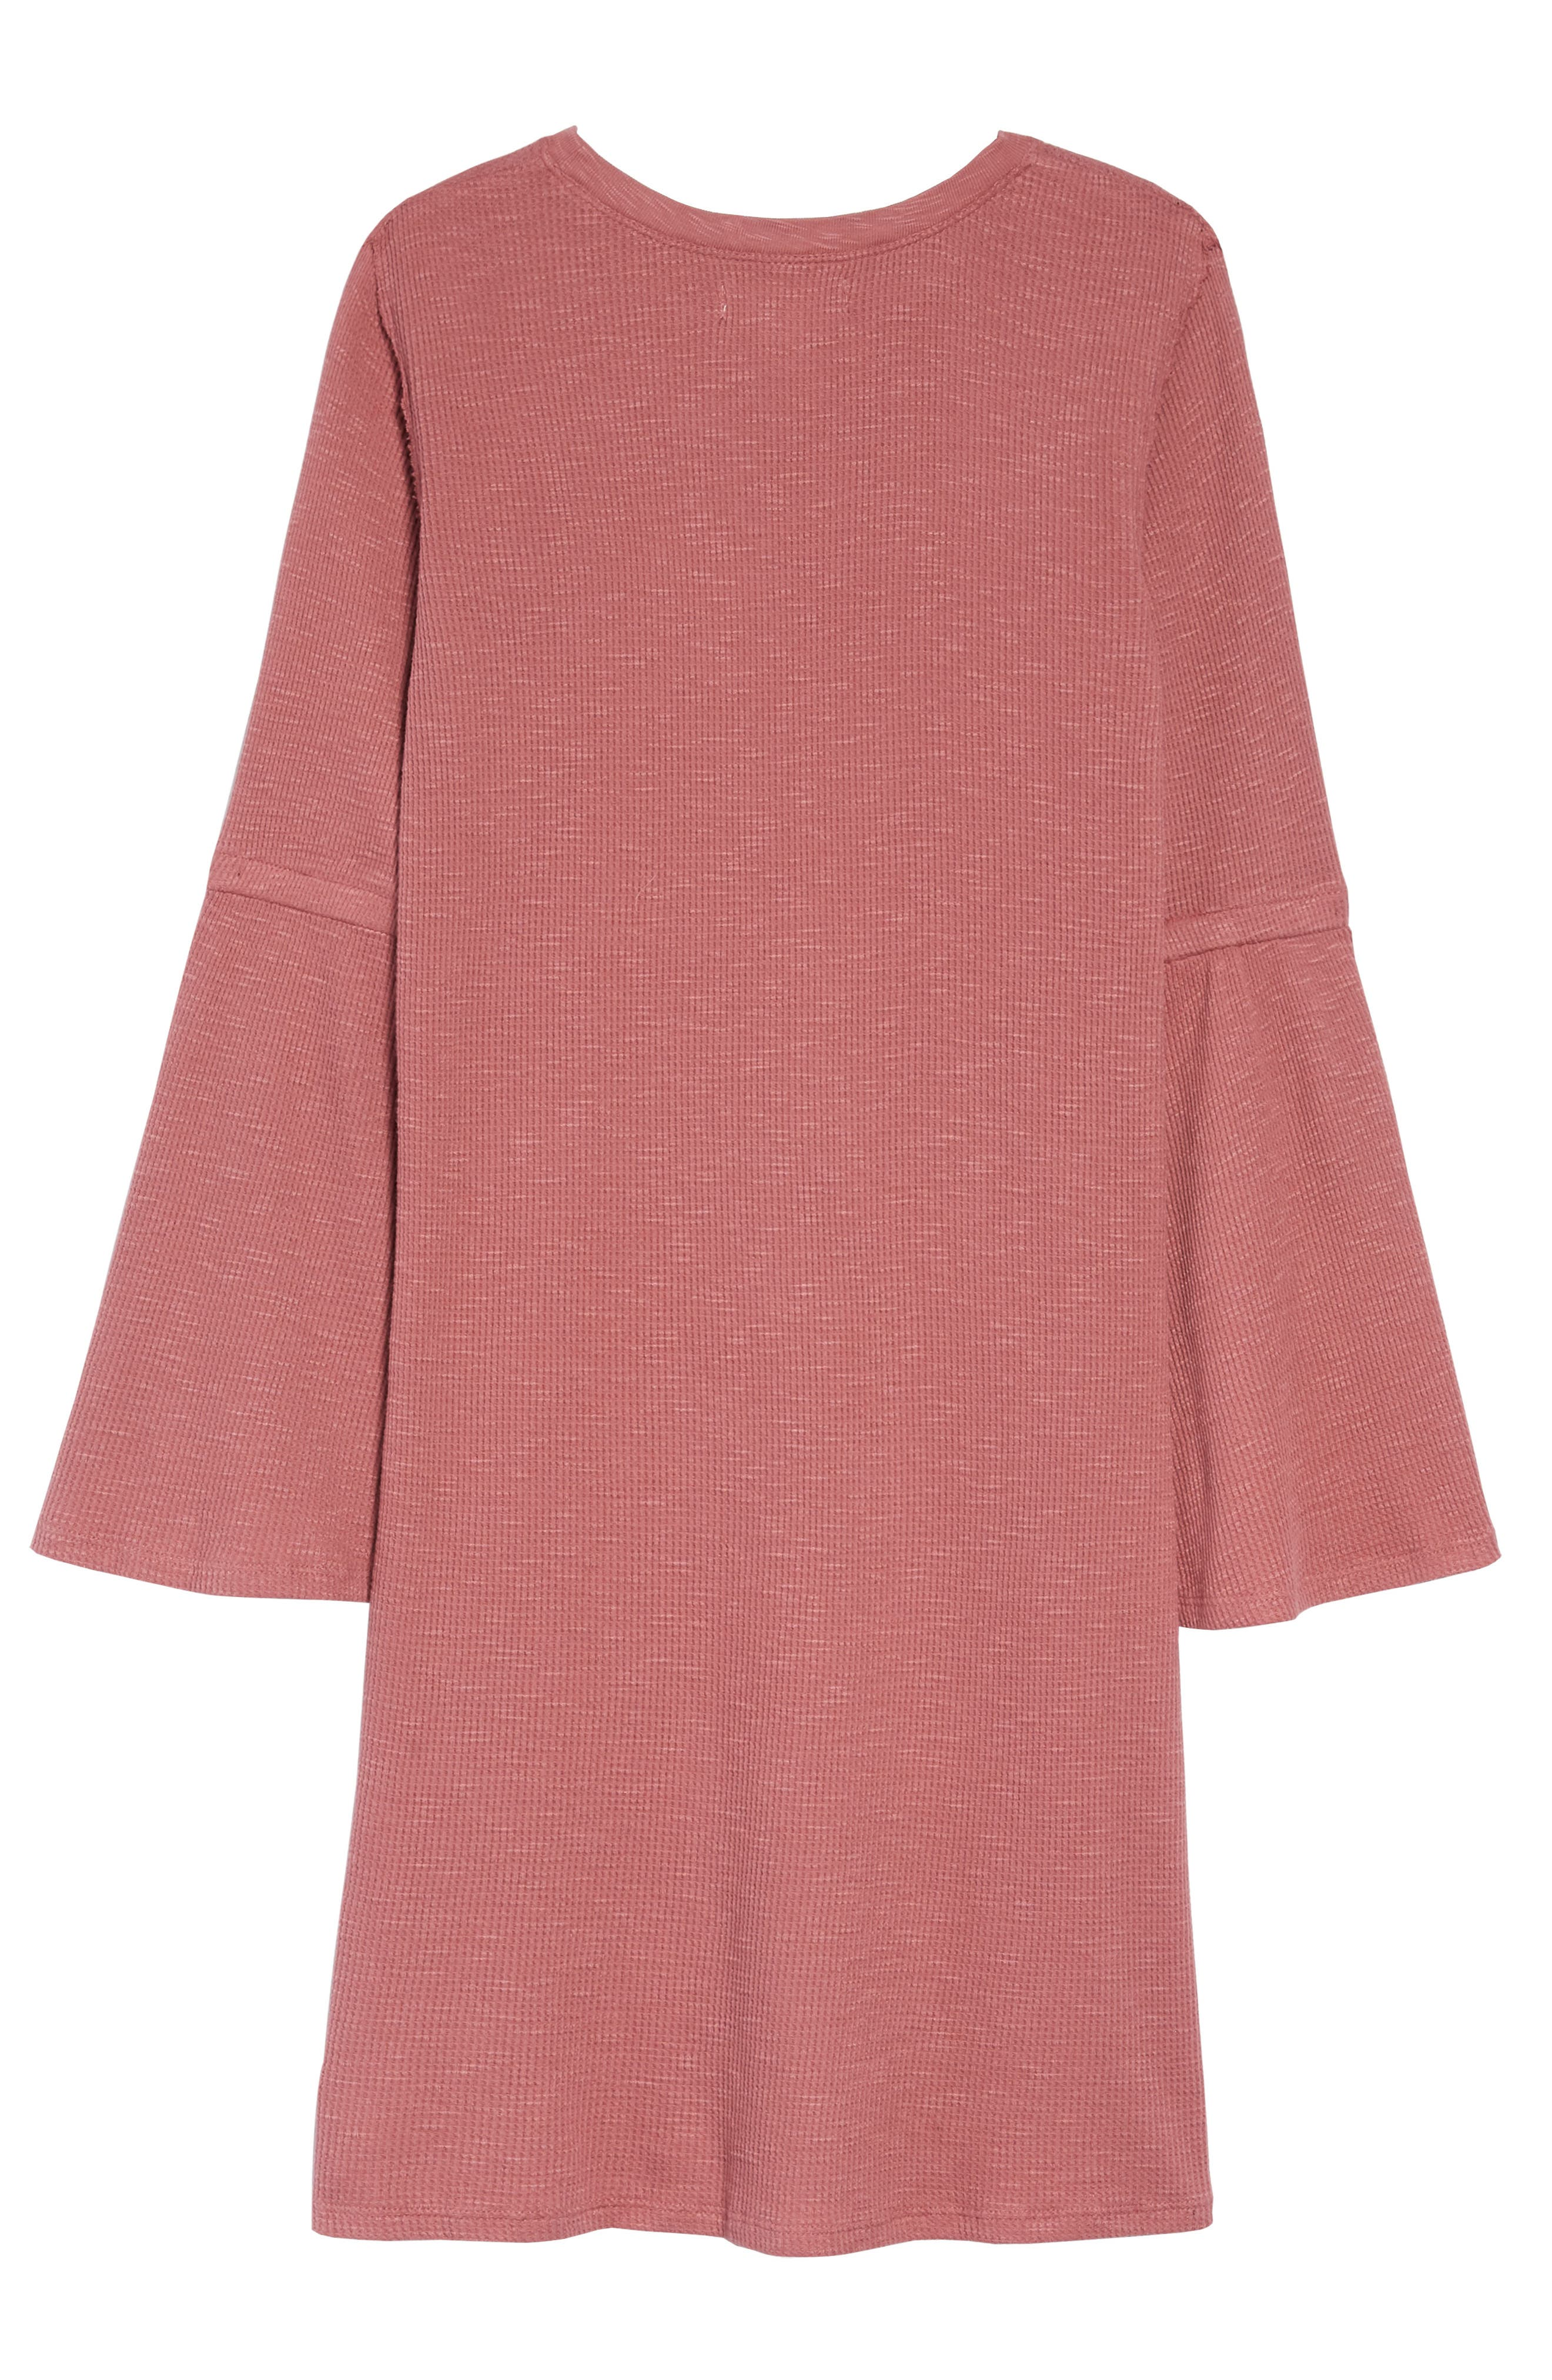 Bell Sleeve Thermal Dress,                             Alternate thumbnail 2, color,                             PINK DECO